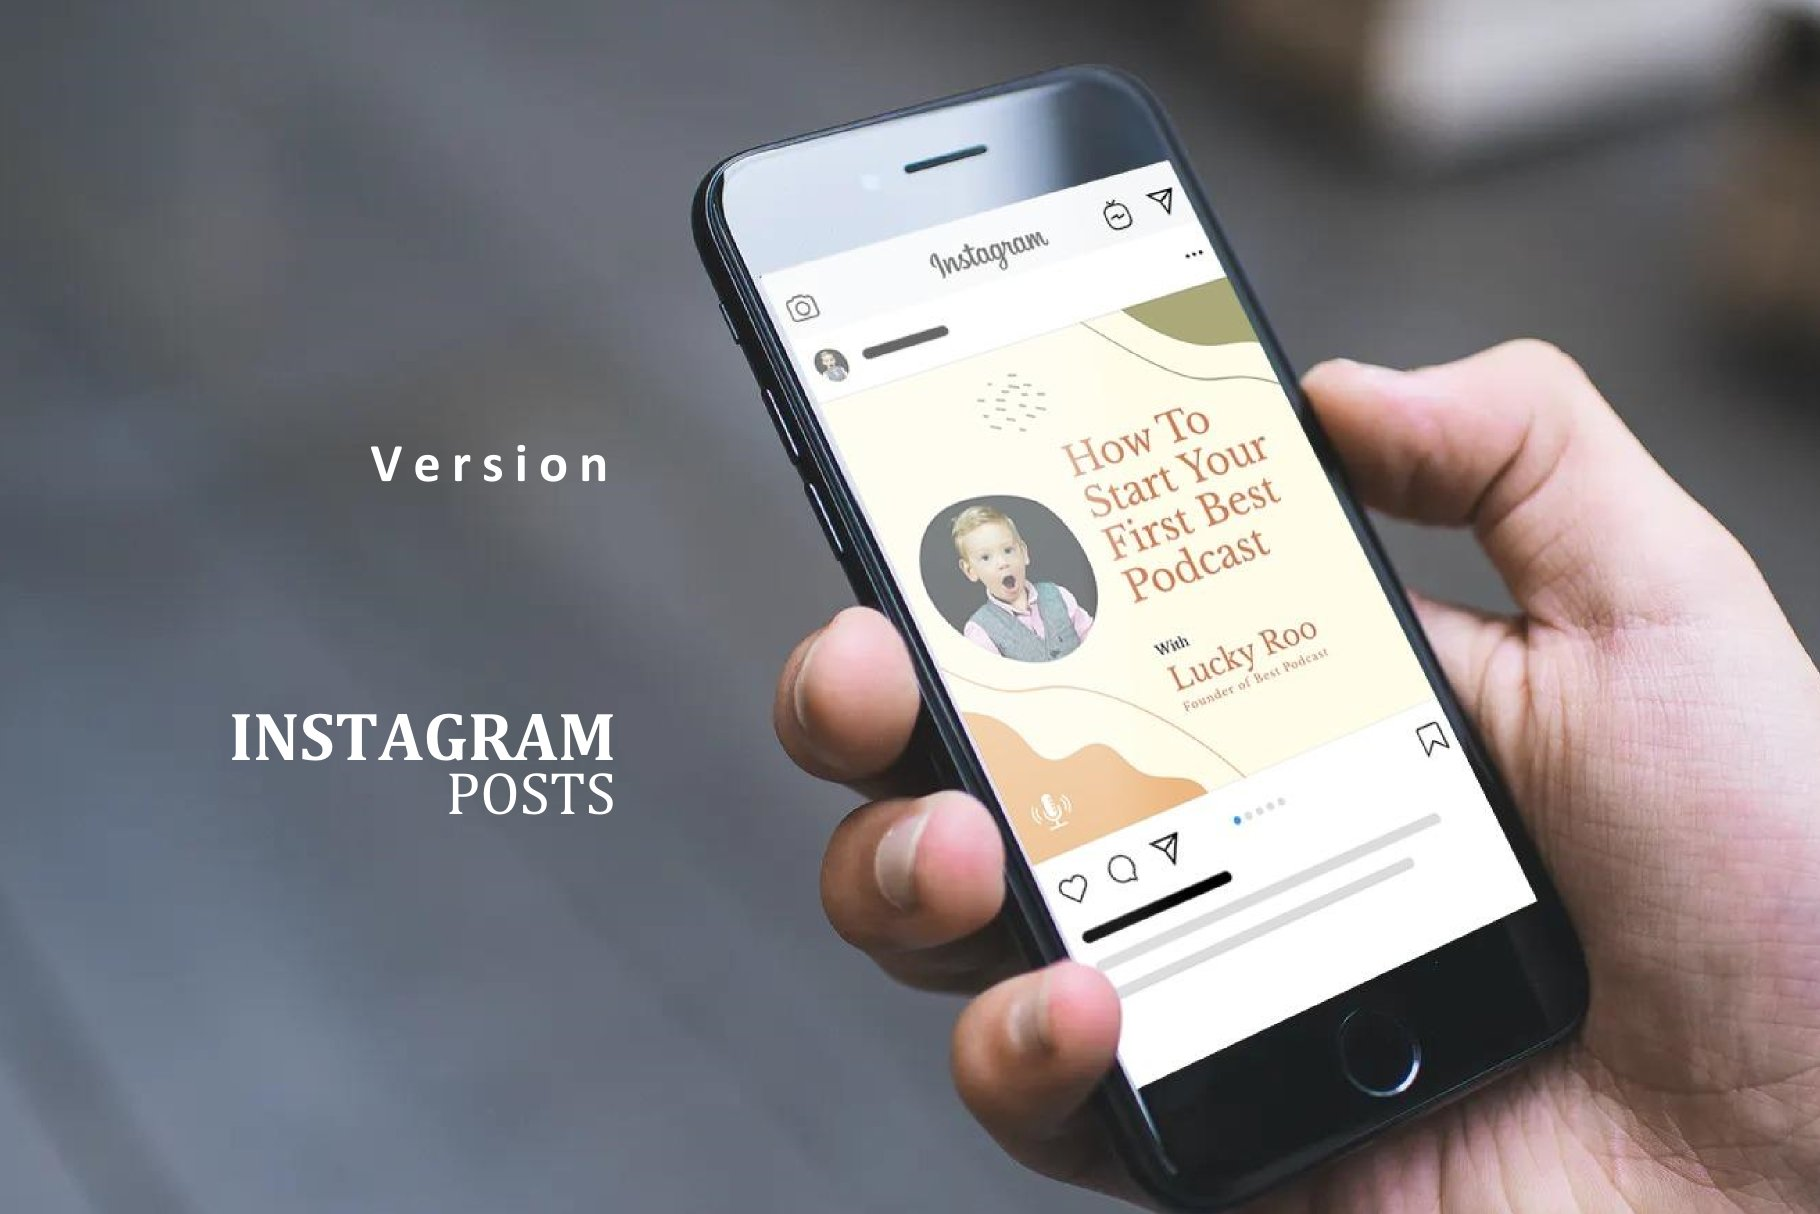 Podcast Instagram Stories and Post - Creativity Podcaster example image 3